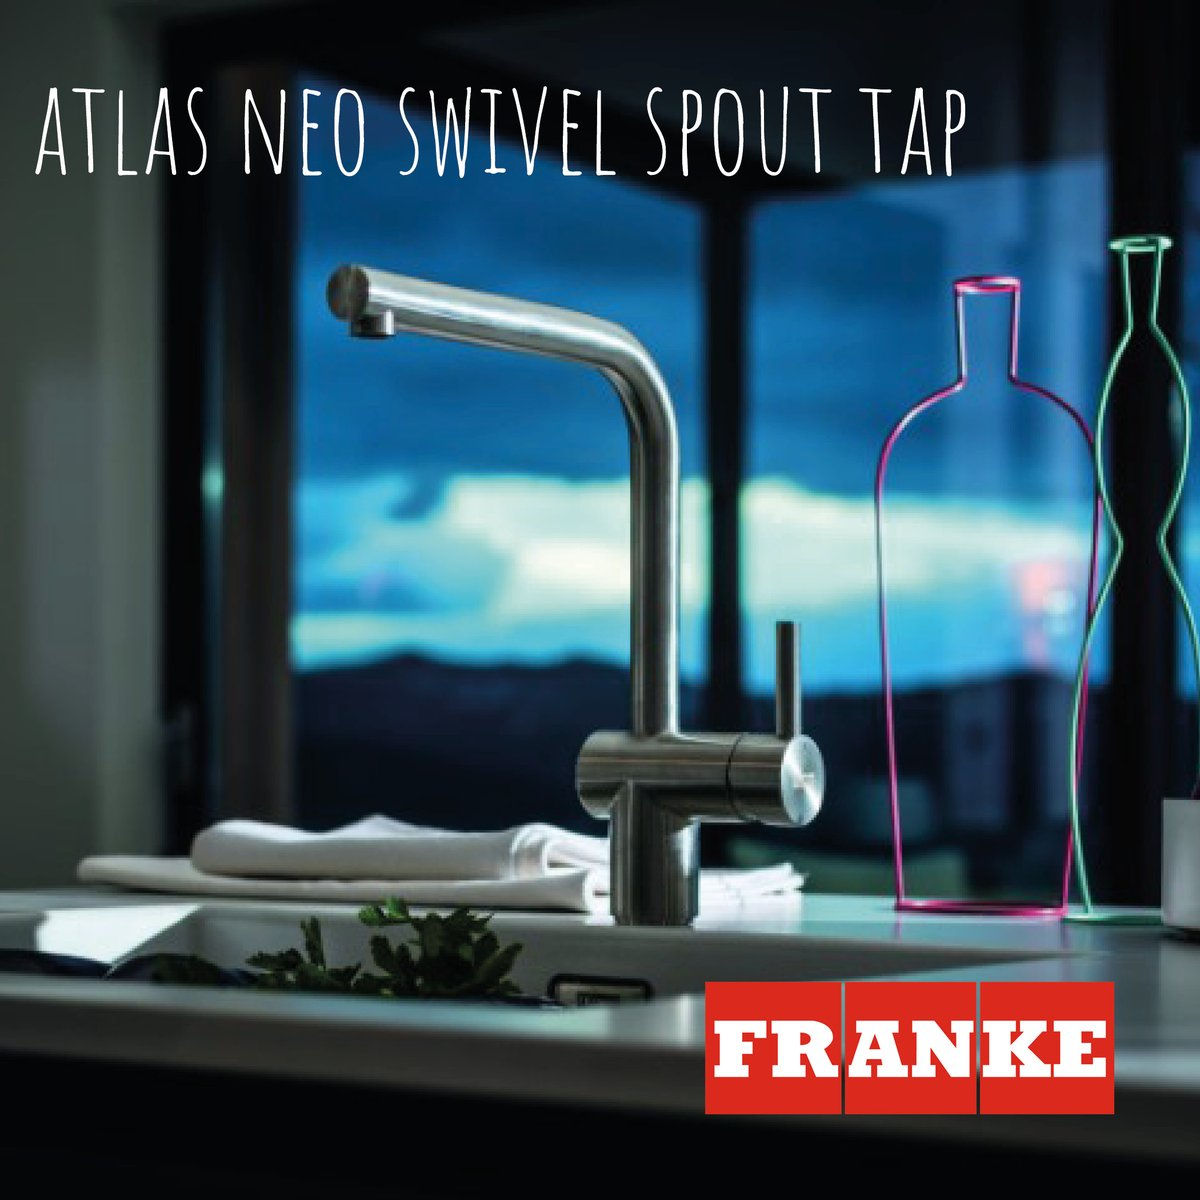 Offering an easy way to add a fresh, contemporary look and feel to your kitchen and made from durable, high-quality solid stainless steel, the iconic Atlas Neo Swivel Spout tap features contemporary straight lines and a timeless, minimalist design. franke.com/content/corpor…